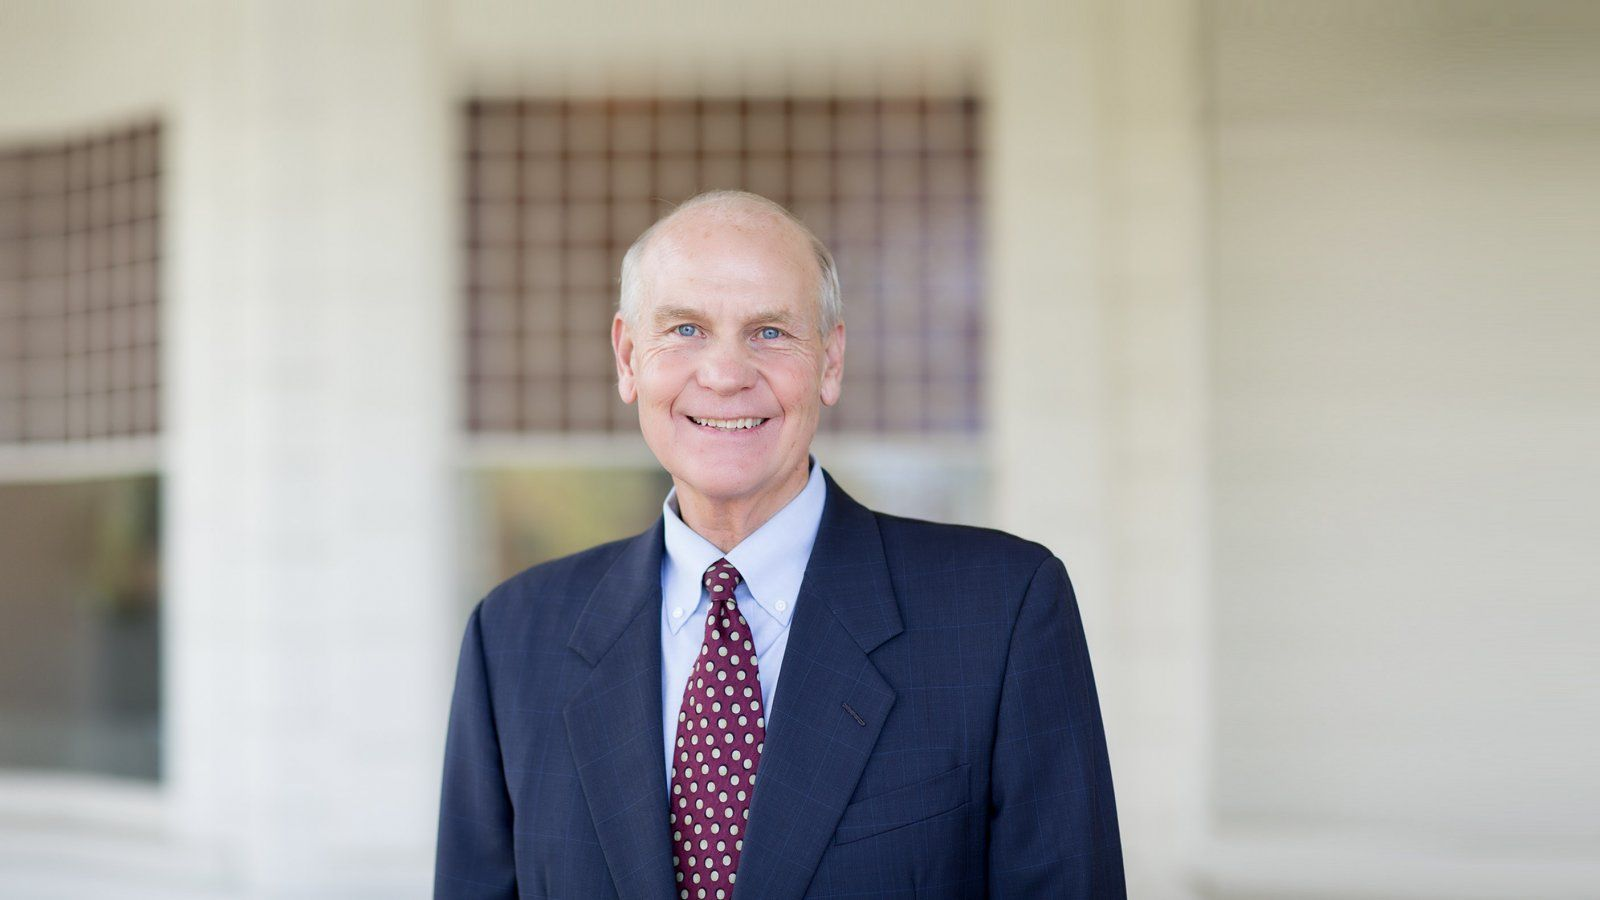 PLNU President, Dr. Brower in front of Mieras Hall